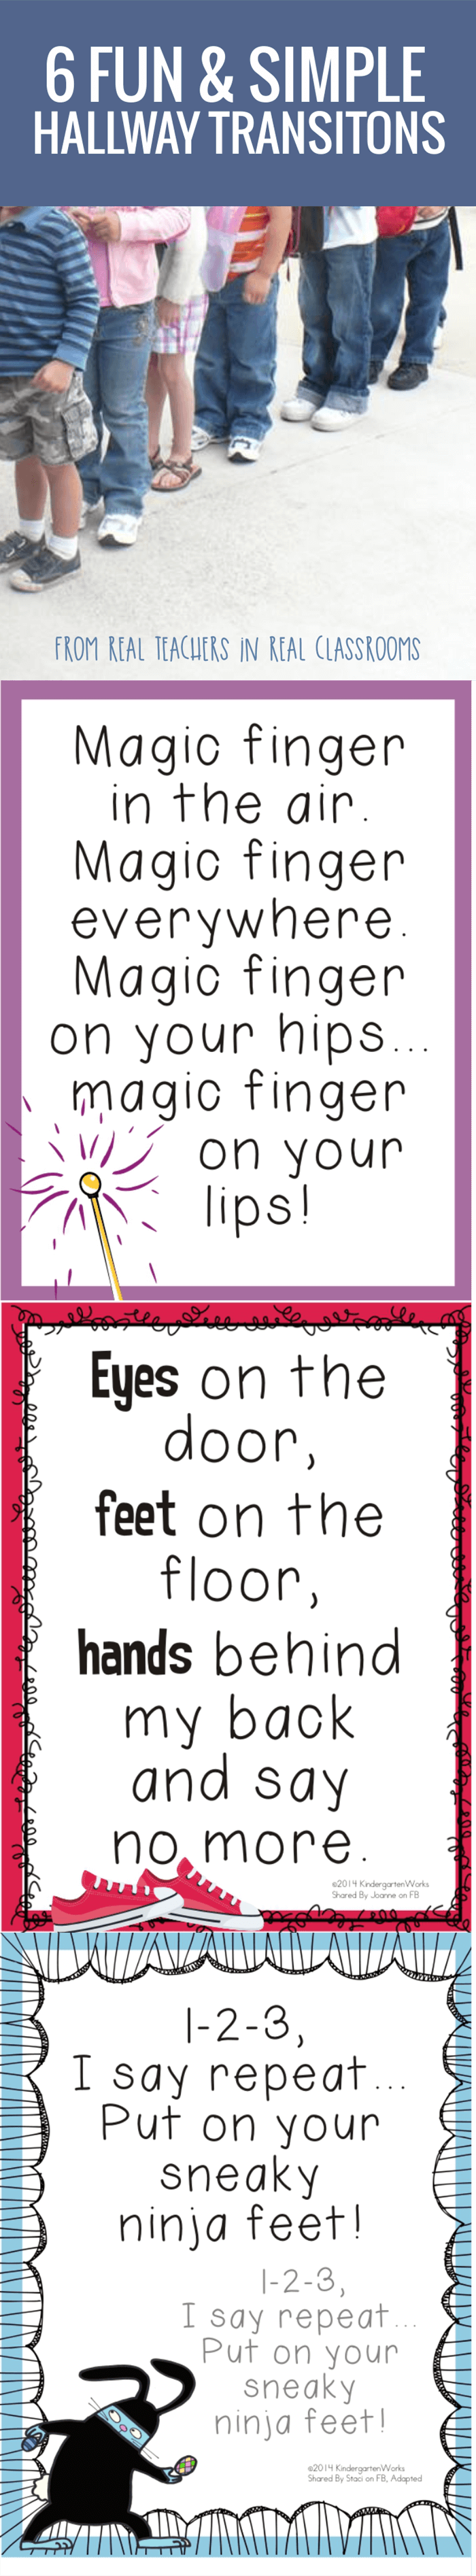 11 Fun and Simple Hallways Transitions for Kindergarten